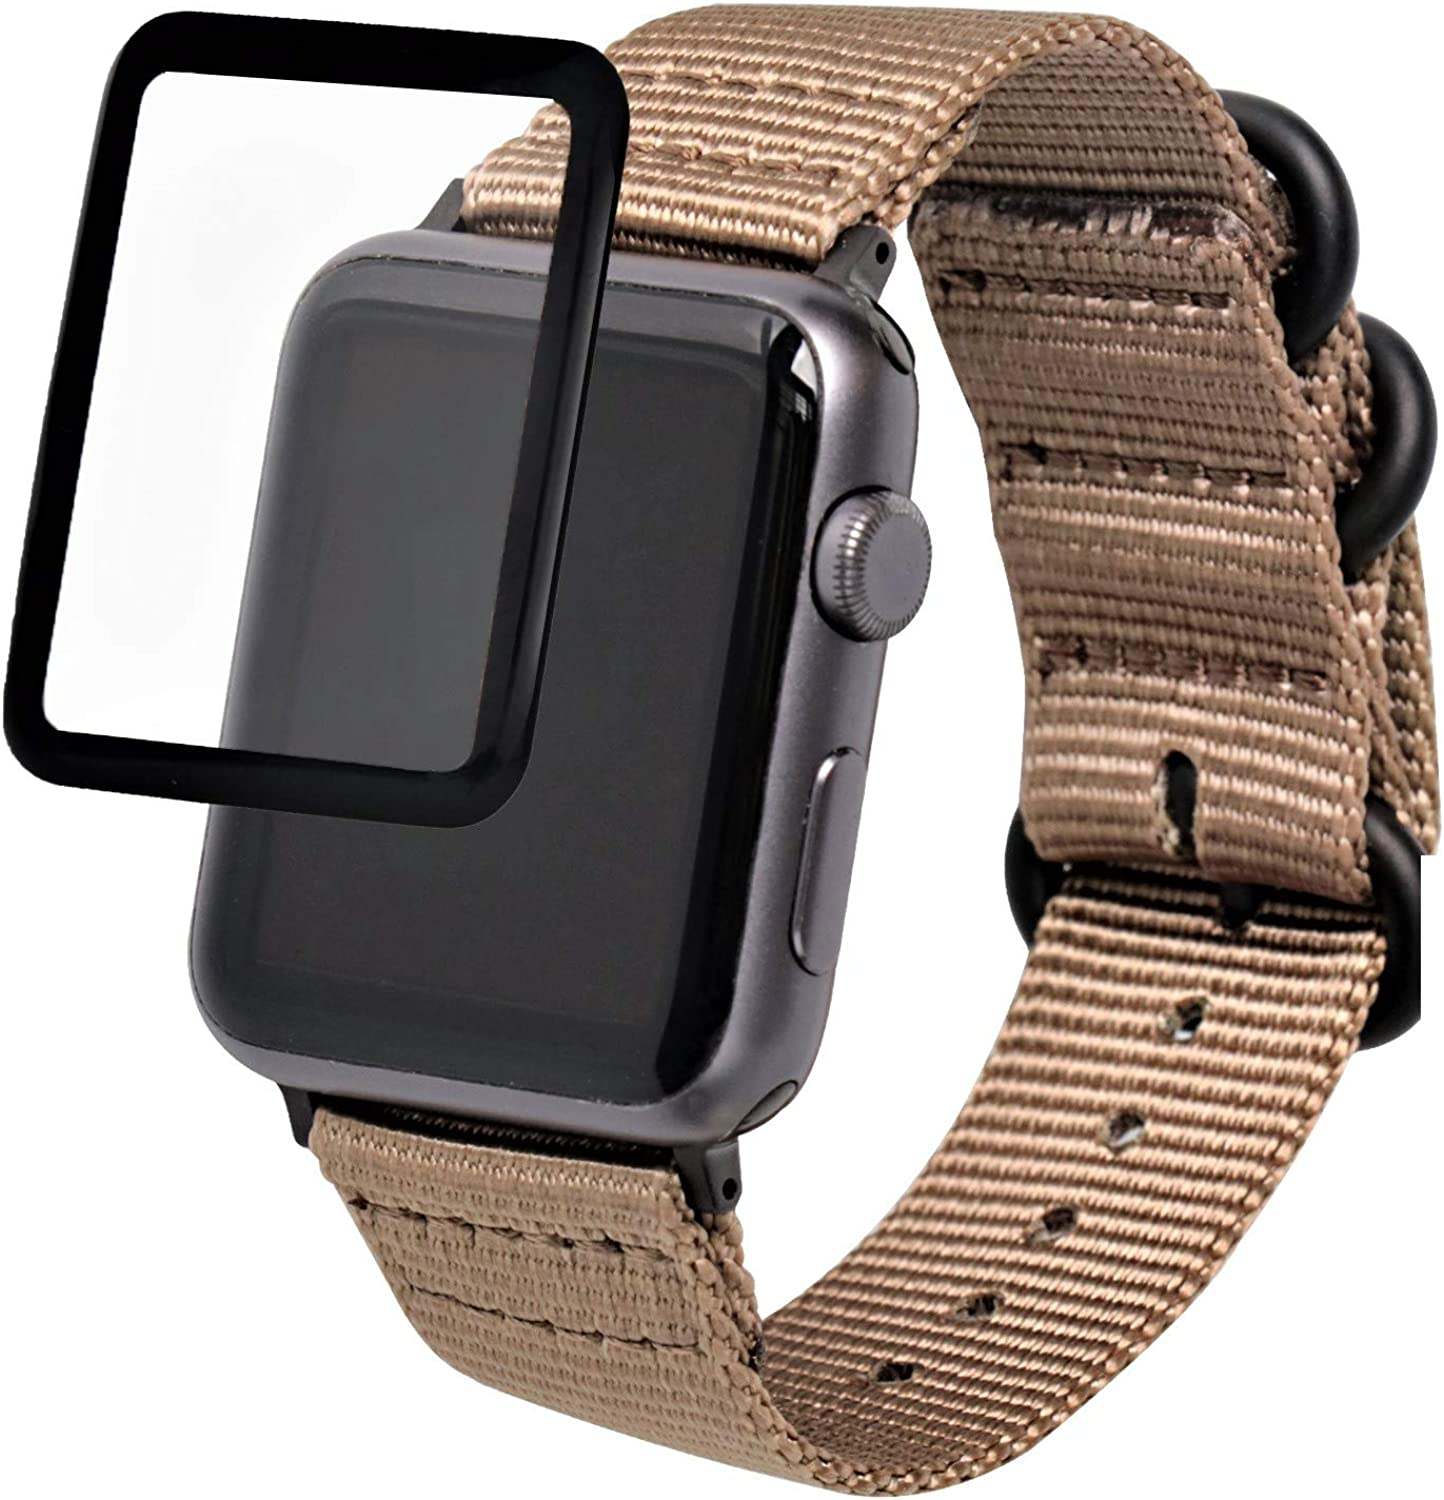 Zeit Diktator Compatible for Apple Watch Bands 38mm 40mm 42mm 44mm for Men Women Quickfit Watch Band for Apple Watch Series 1/Series 2/Series 3/Series 4/Series 5/Series 6,Optional Color